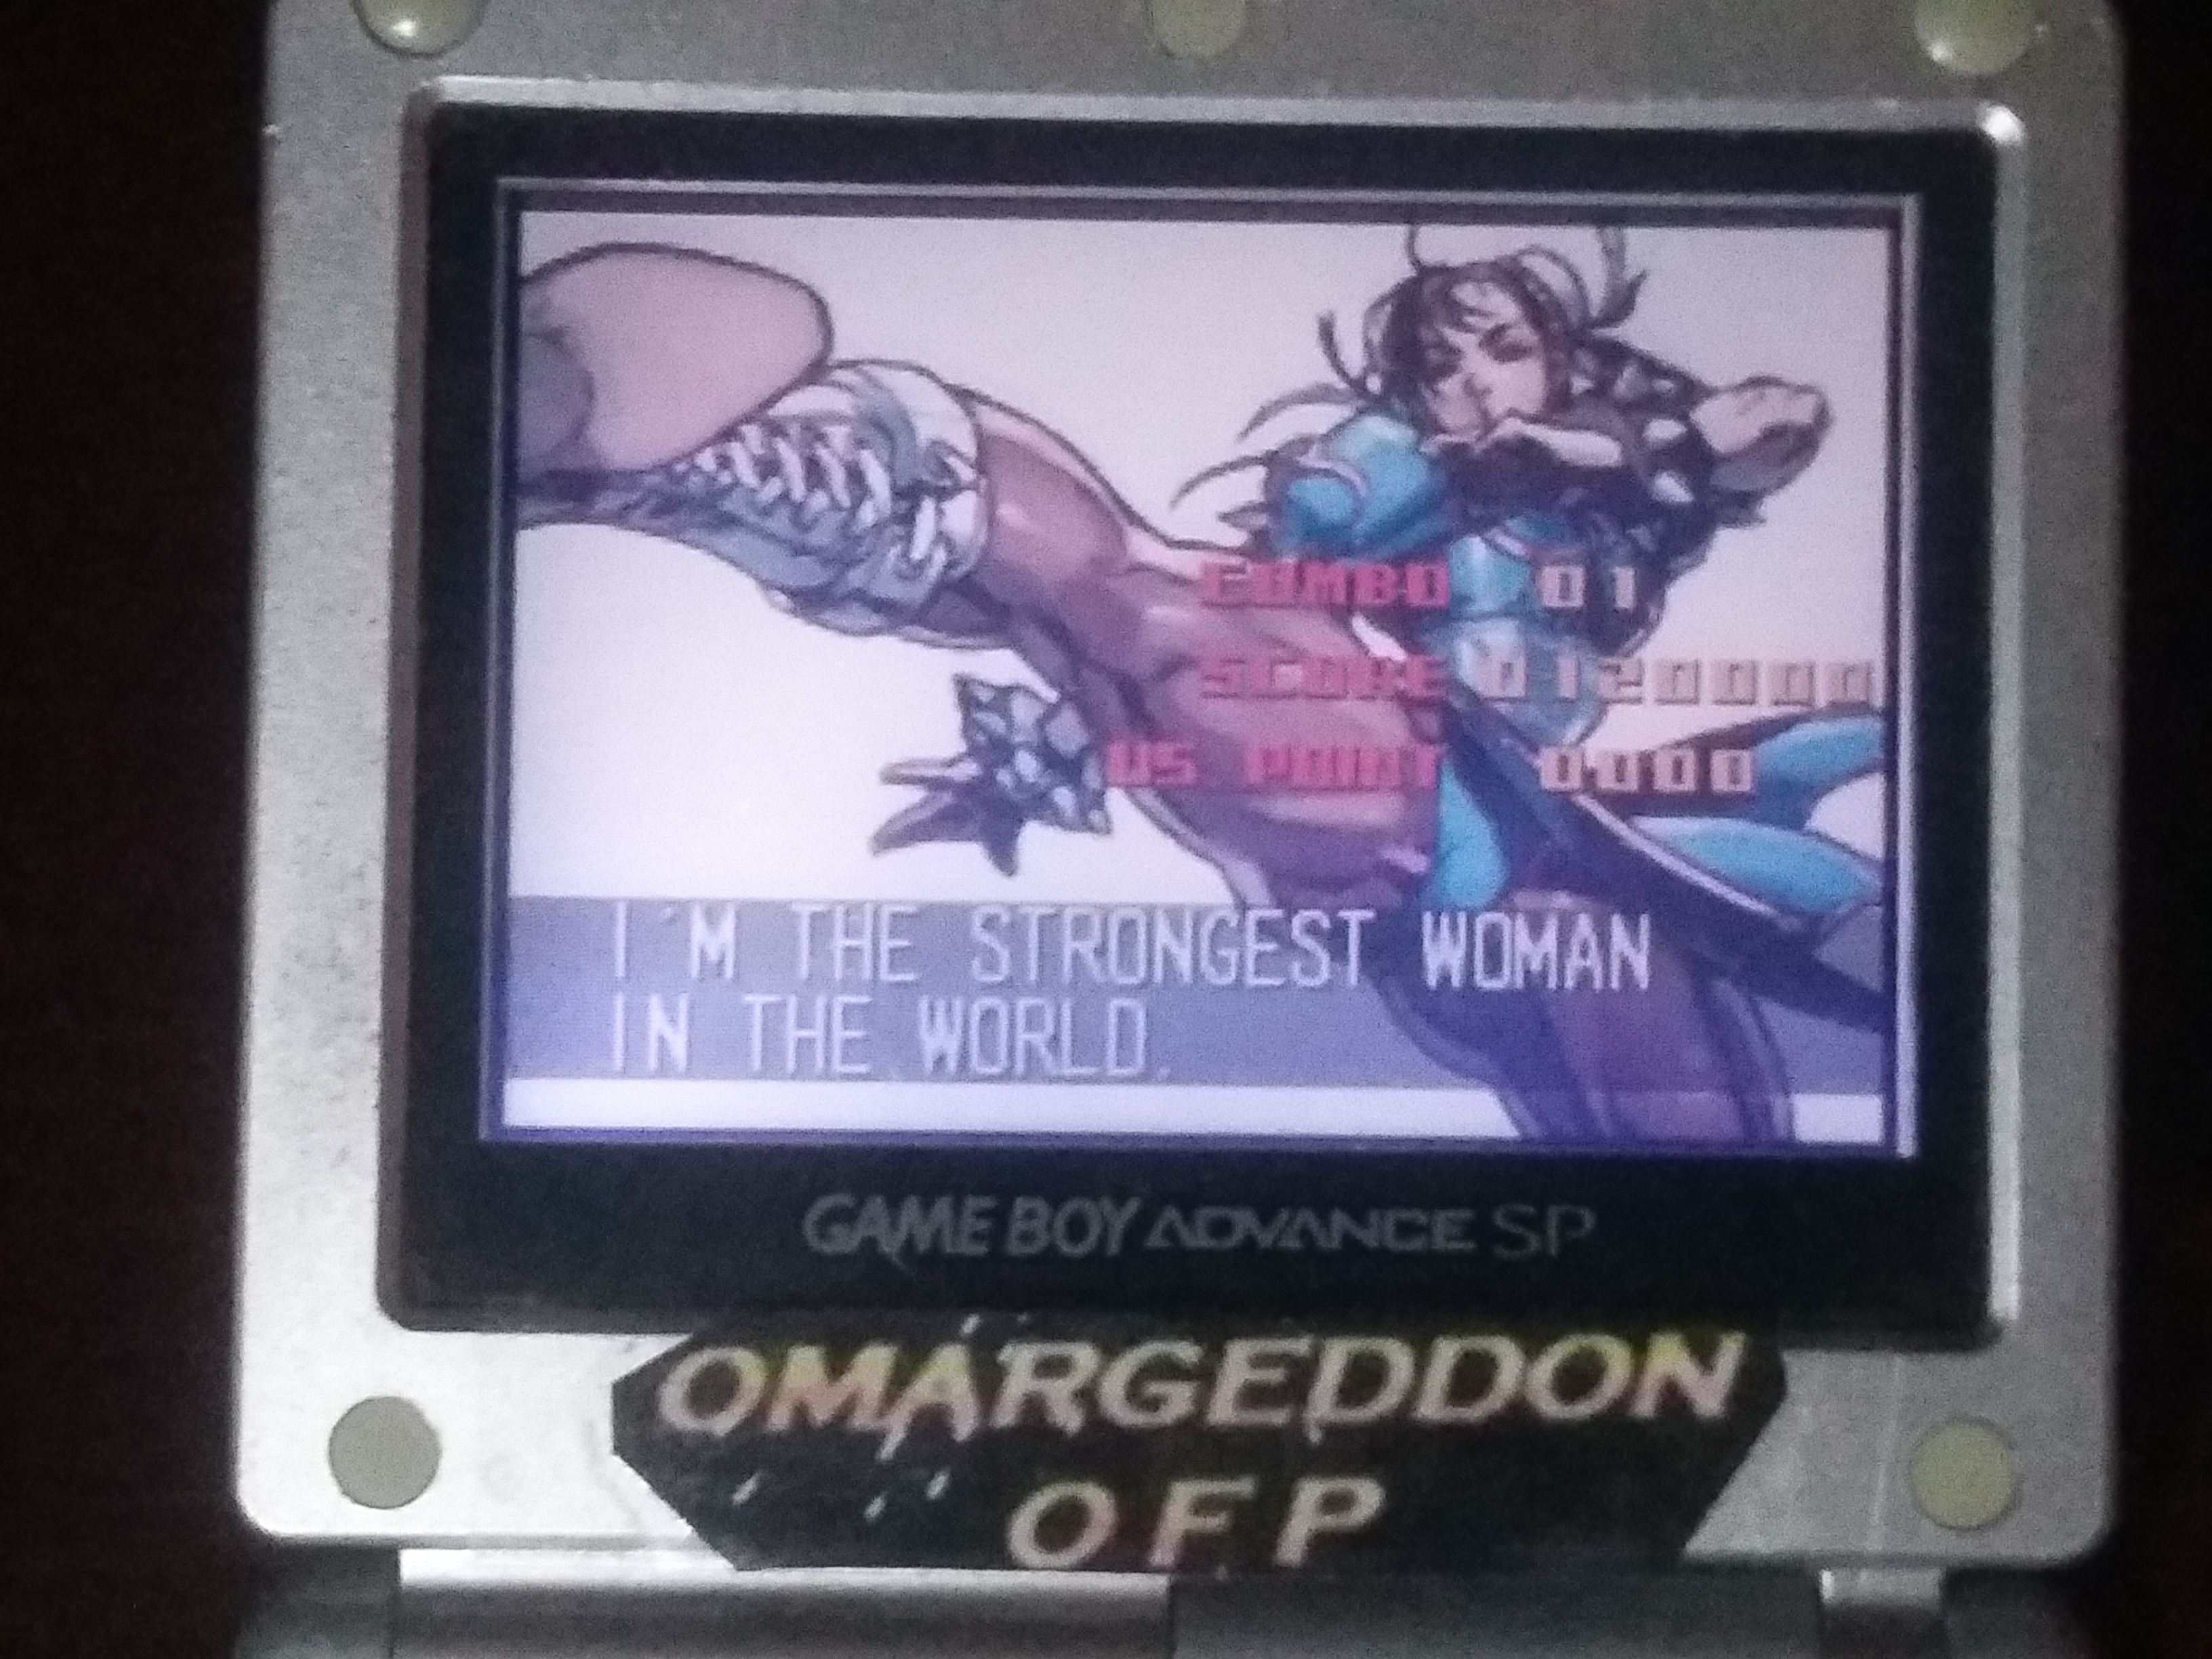 omargeddon: Super Street Fighter II Turbo Revival [Arcade Mode / Difficulty: Level 3] (GBA) 120,000 points on 2018-01-17 15:15:24